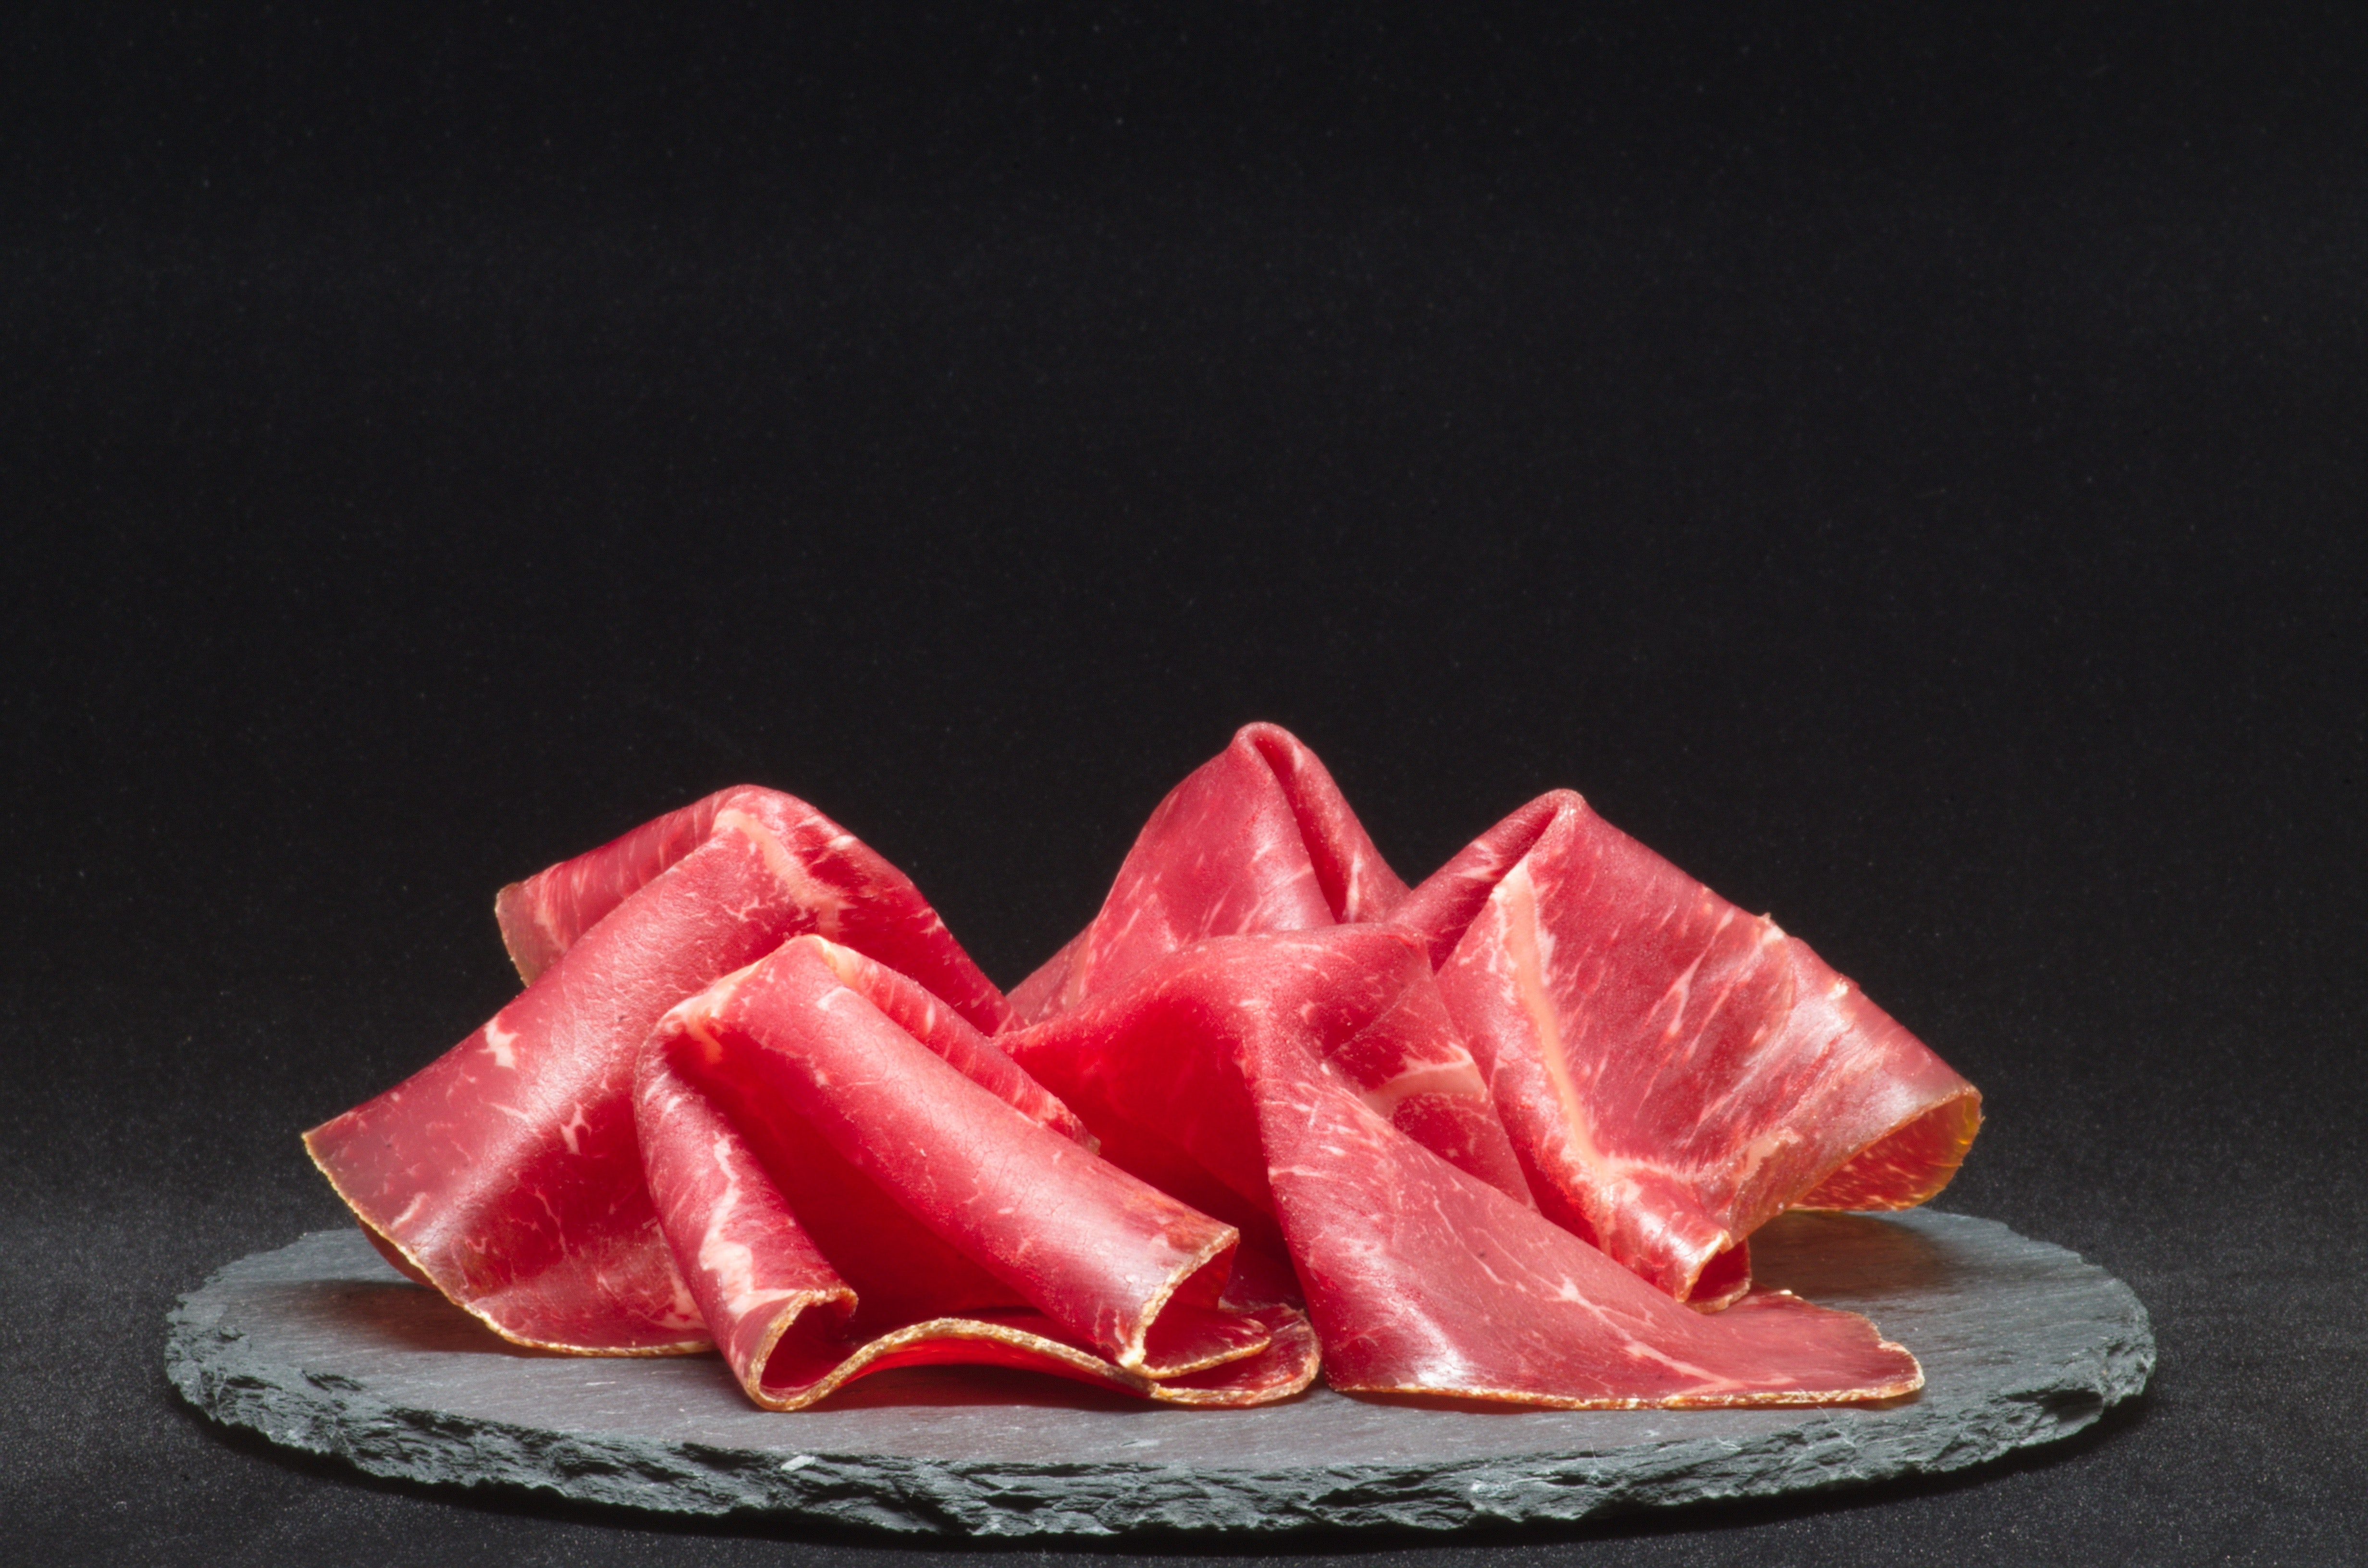 Red Meat With Chili Pepper And Green Spies 183 Free Stock Photo